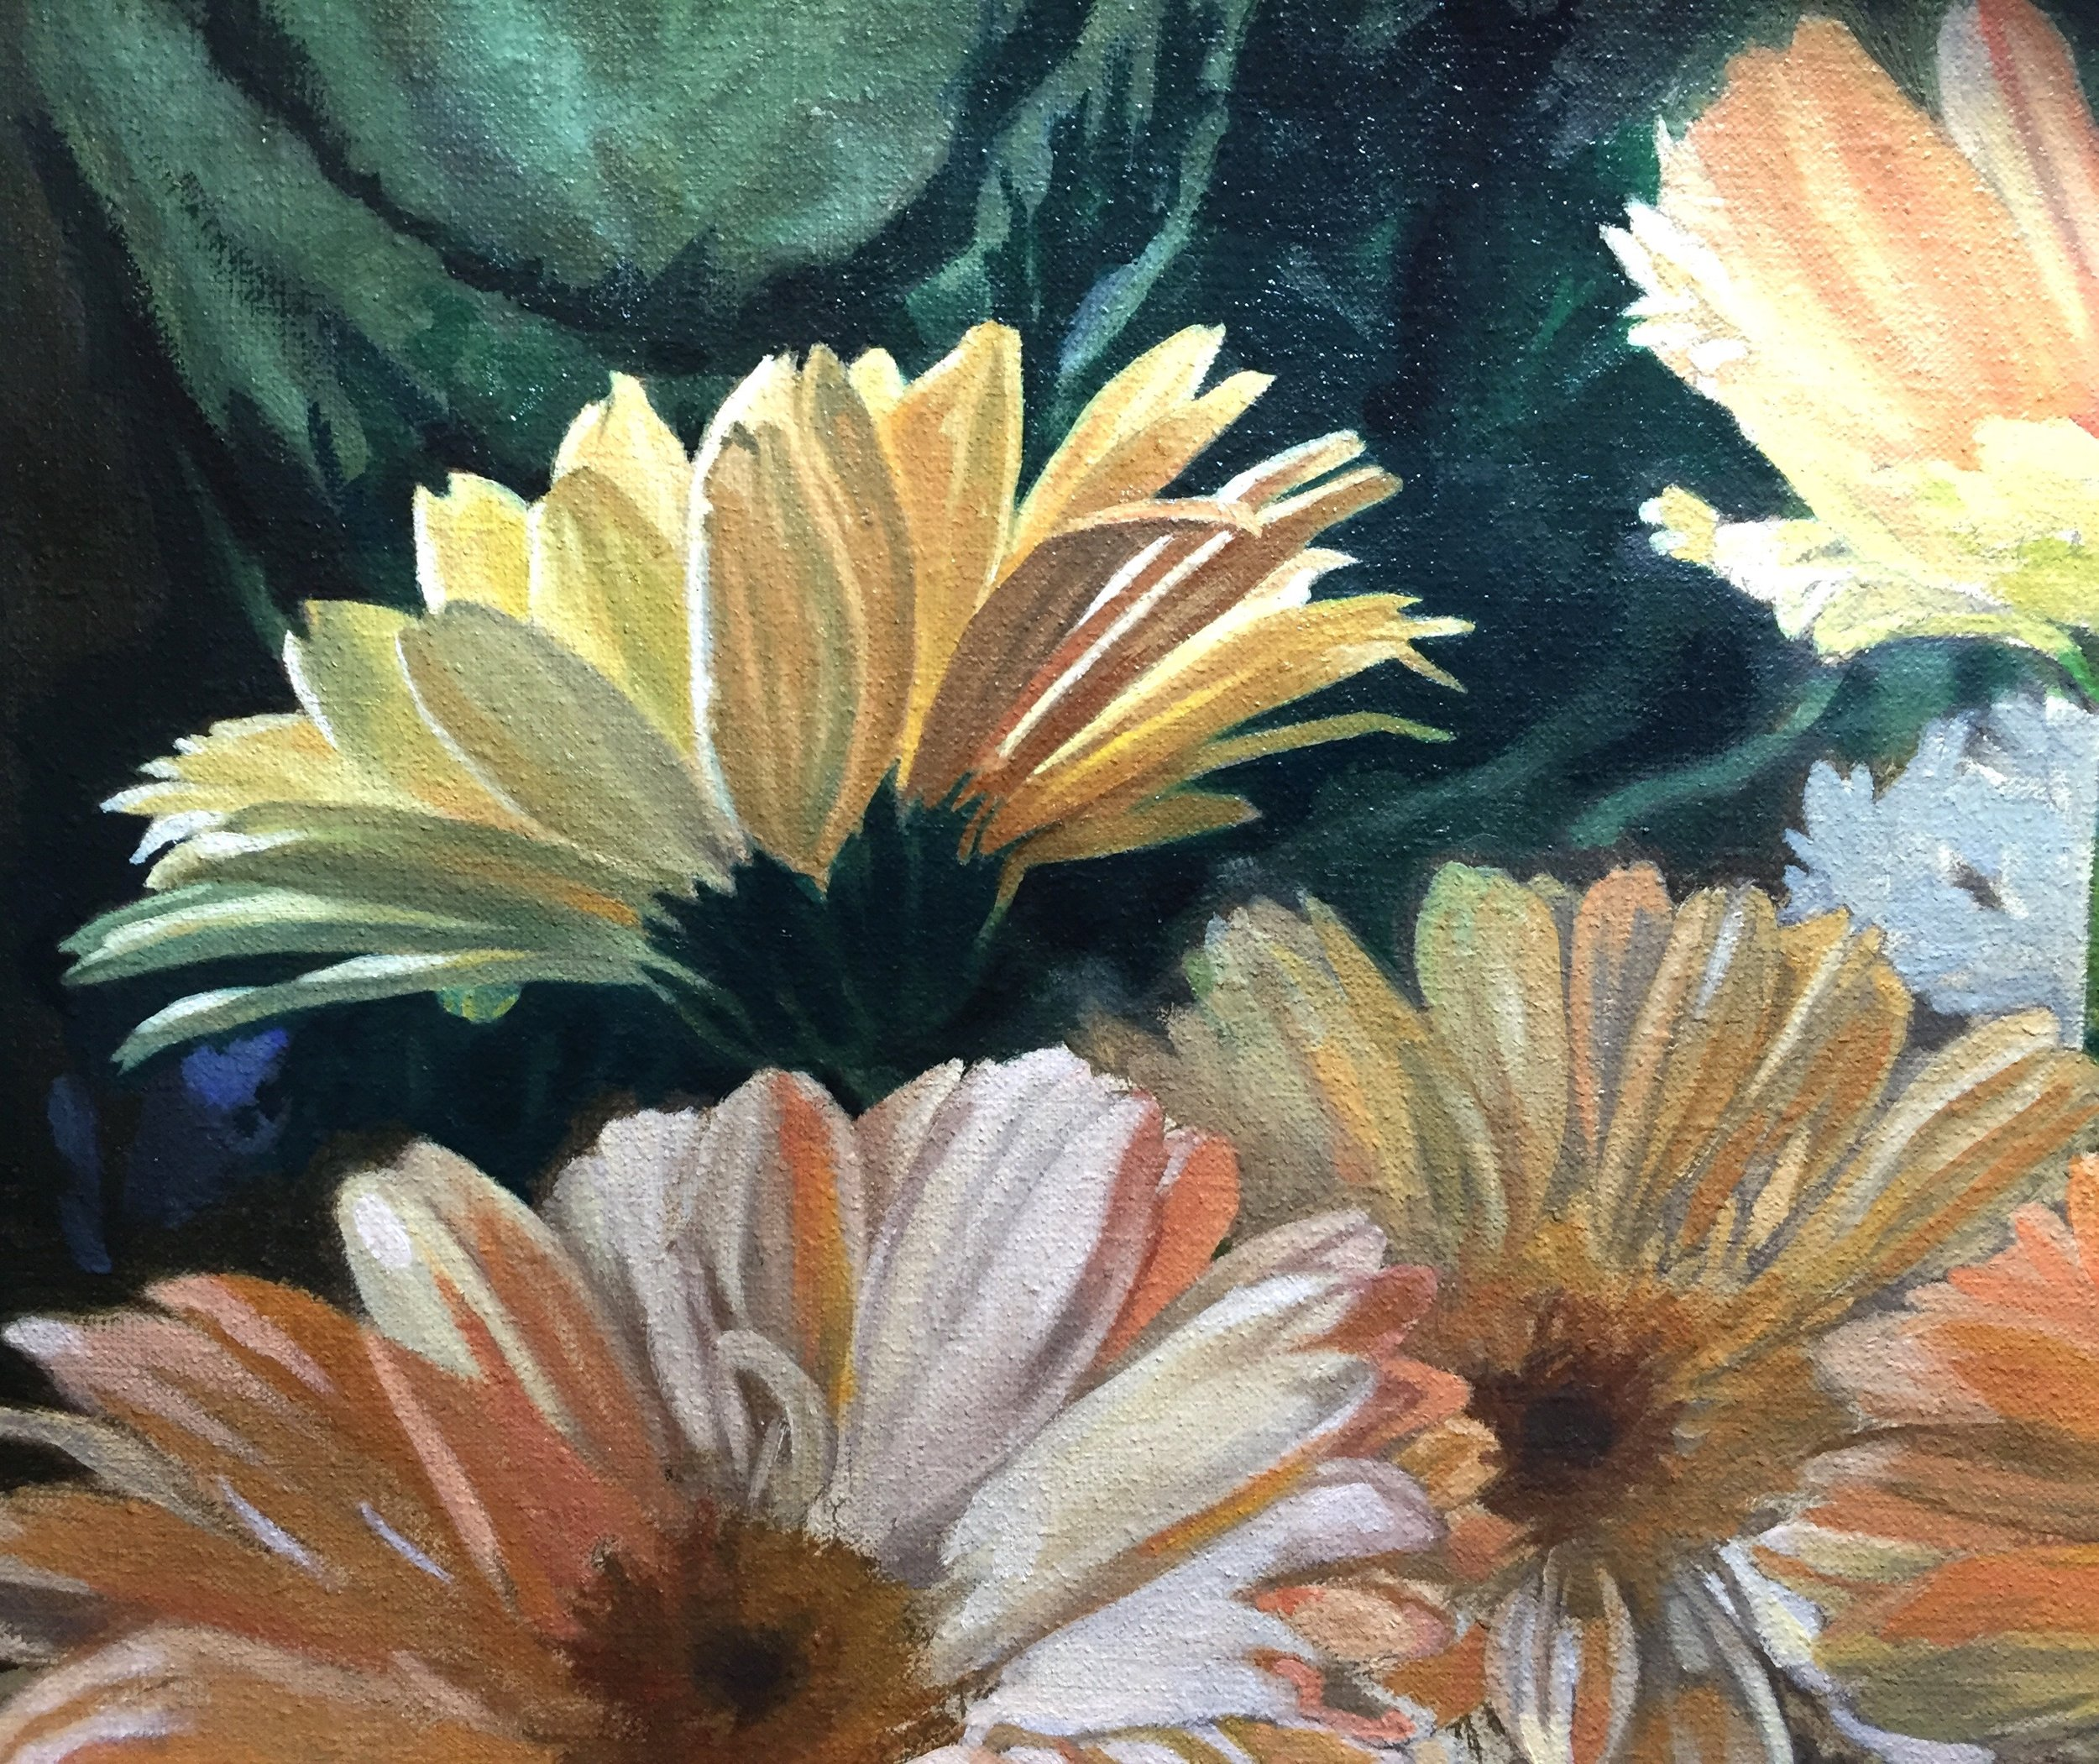 Second layer on the first daisy